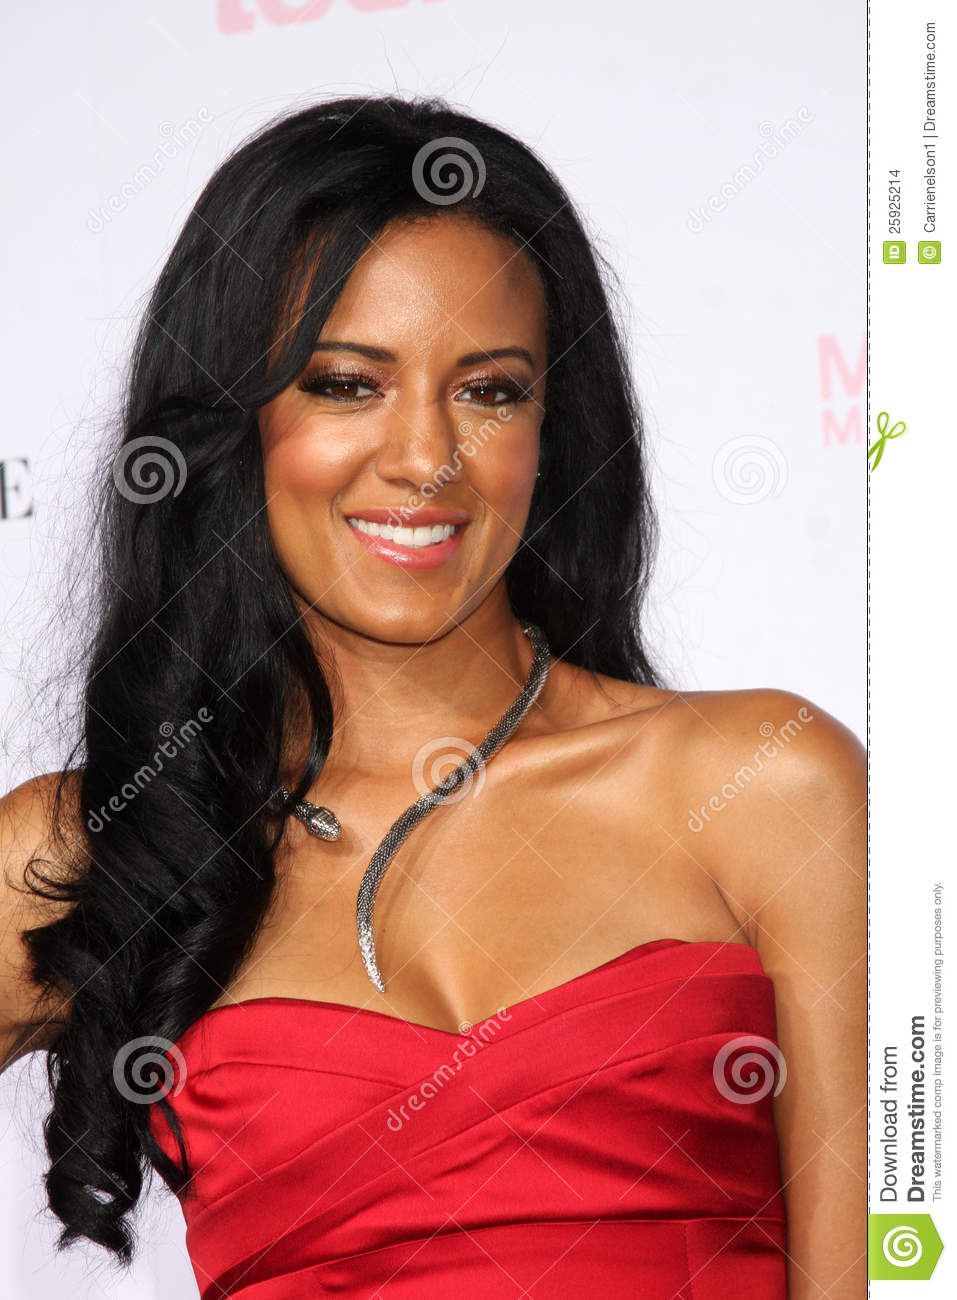 heather hemmens moviesheather hemmens instagram, heather hemmens photos, heather hemmens husband, heather hemmens grey's anatomy, heather hemmens twitter, heather hemmens movies, heather hemmens ig, heather hemmens 2016, heather hemmens wiki, heather hemmens net worth, heather hemmens matt barr, heather hemmens vampire diaries, heather hemmens wikipedia, heather hemmens bio, heather hemmens race, heather hemmens feet, heather hemmens boyfriend, heather hemmens hot, heather hemmens height, heather hemmens mother